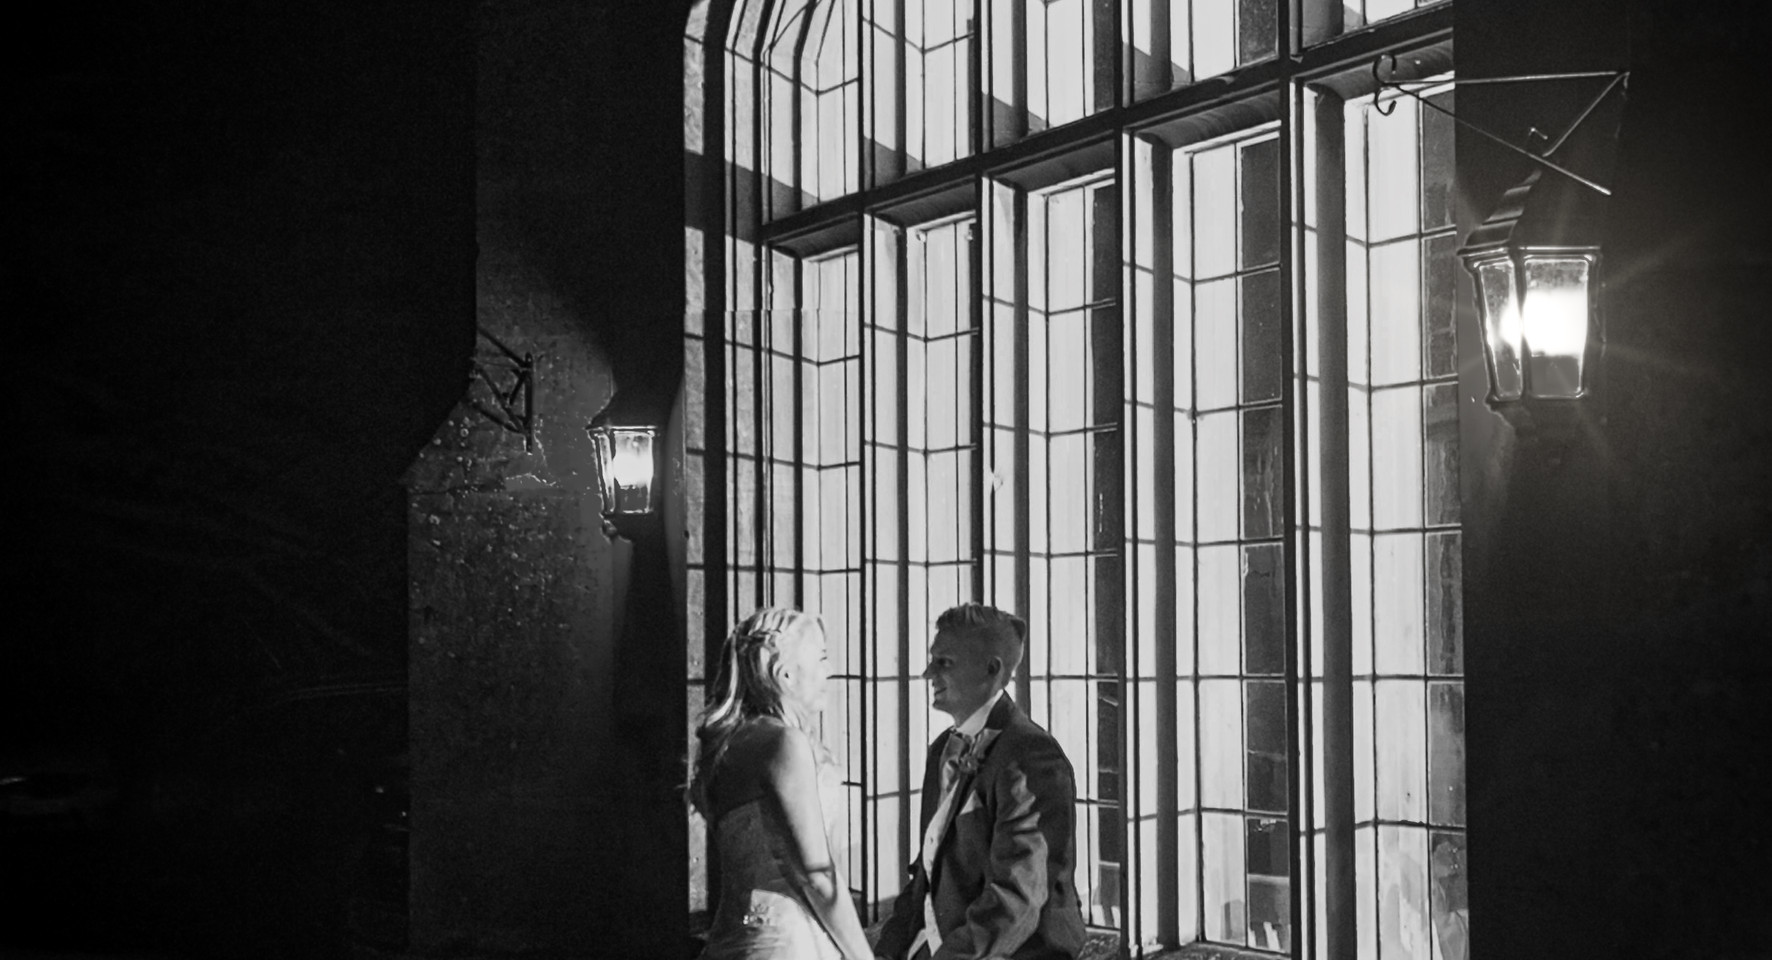 beide and groom nightime large window black and white